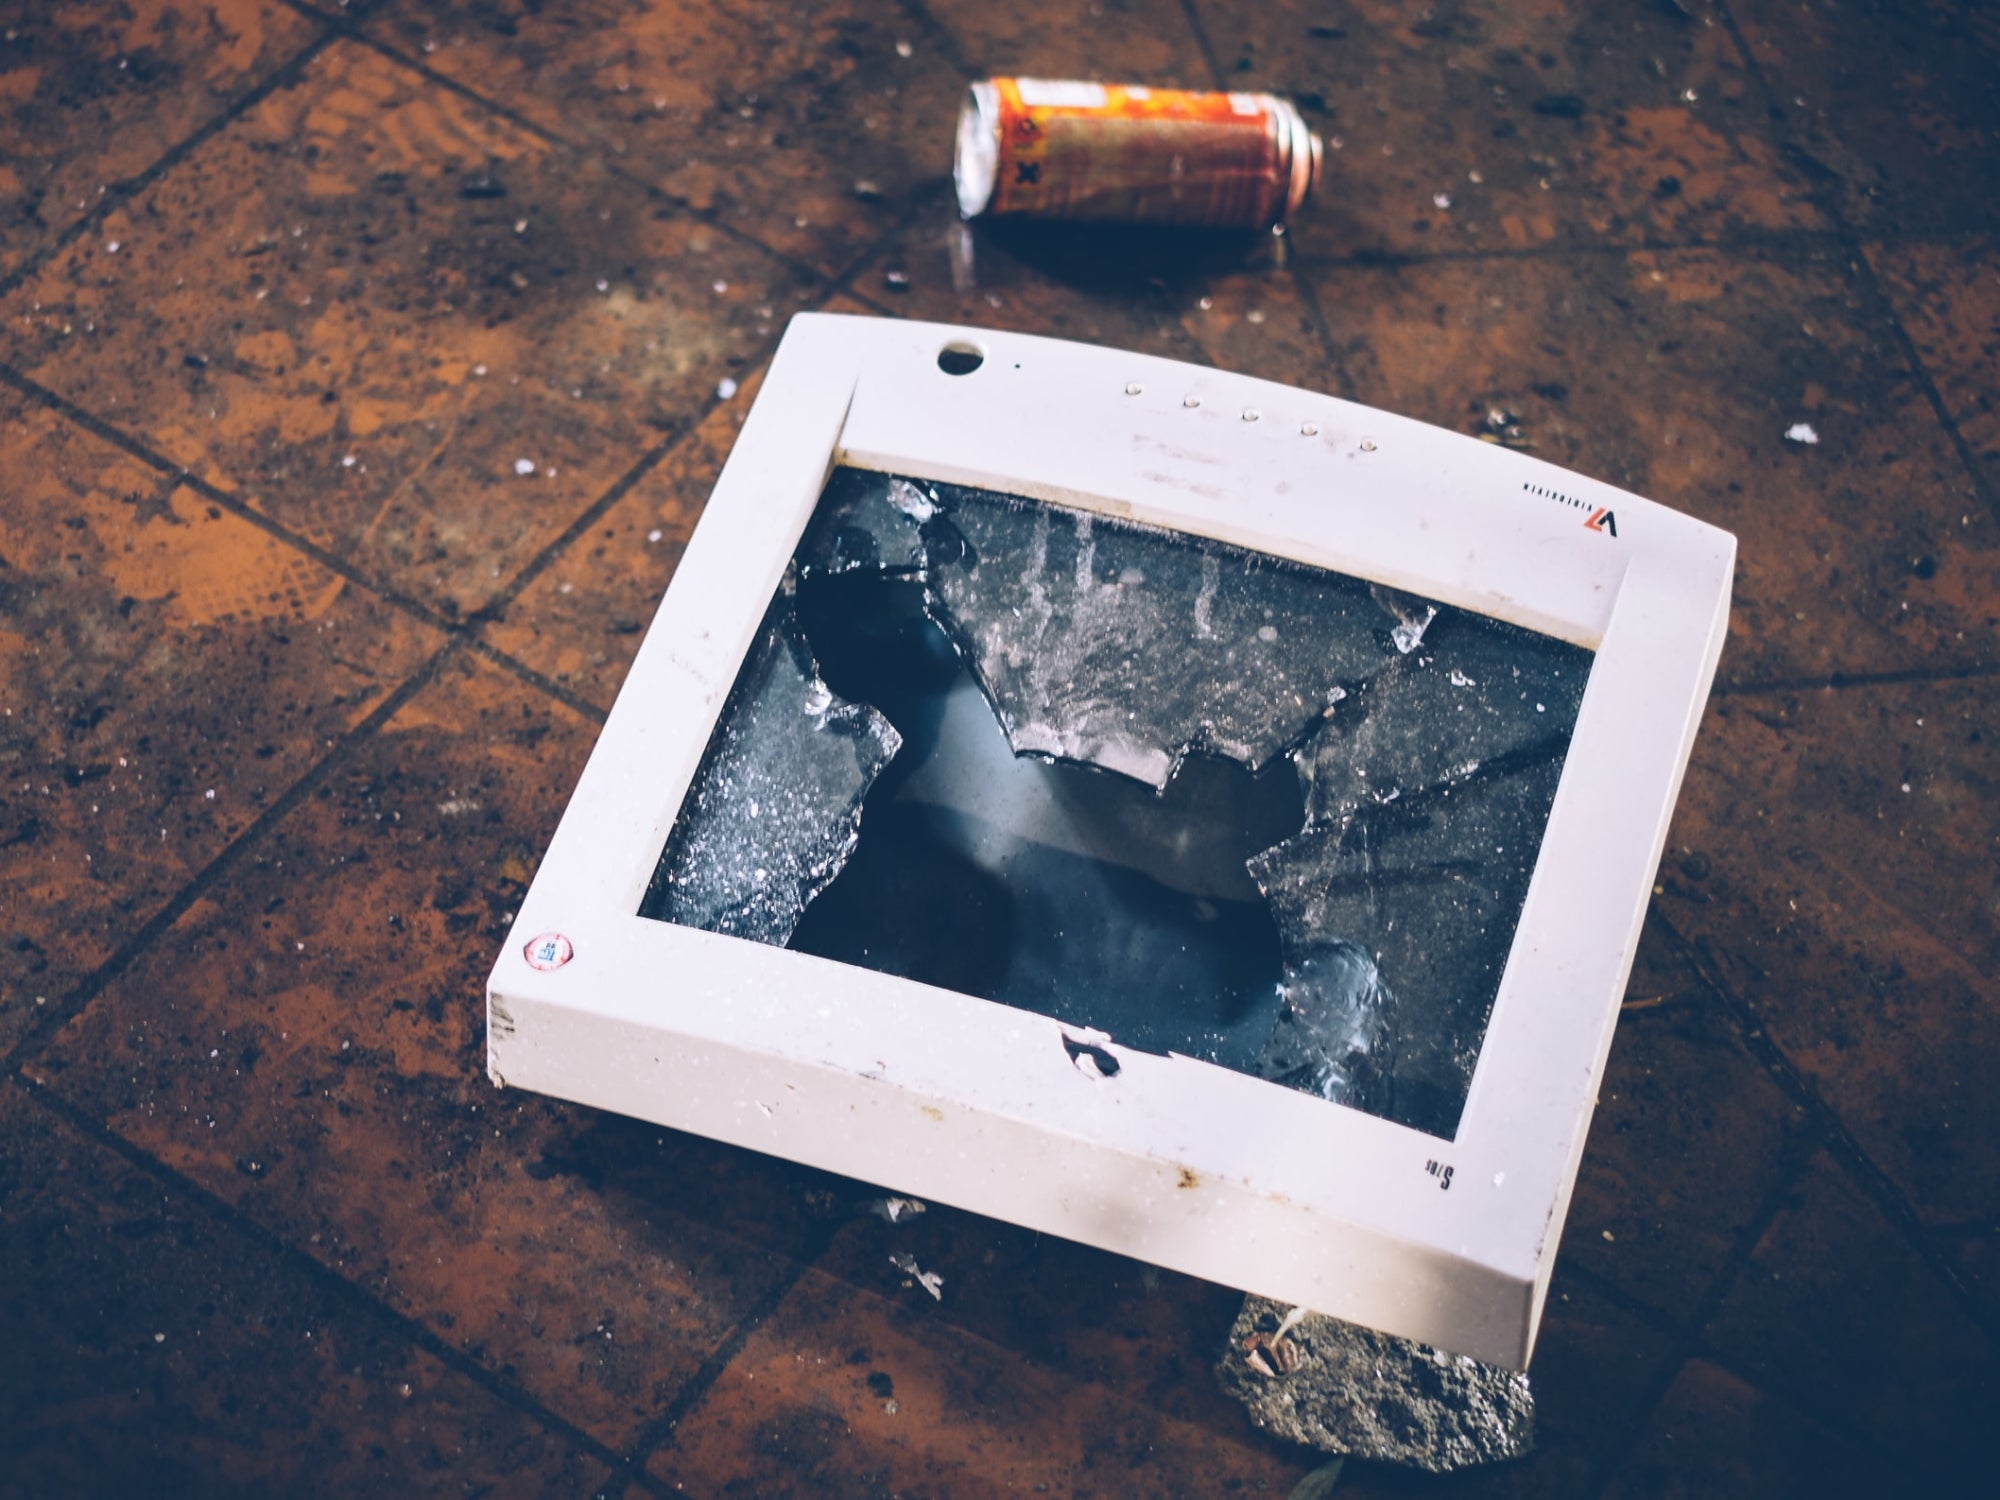 a smashed computer monitor on a floor near a discarded can